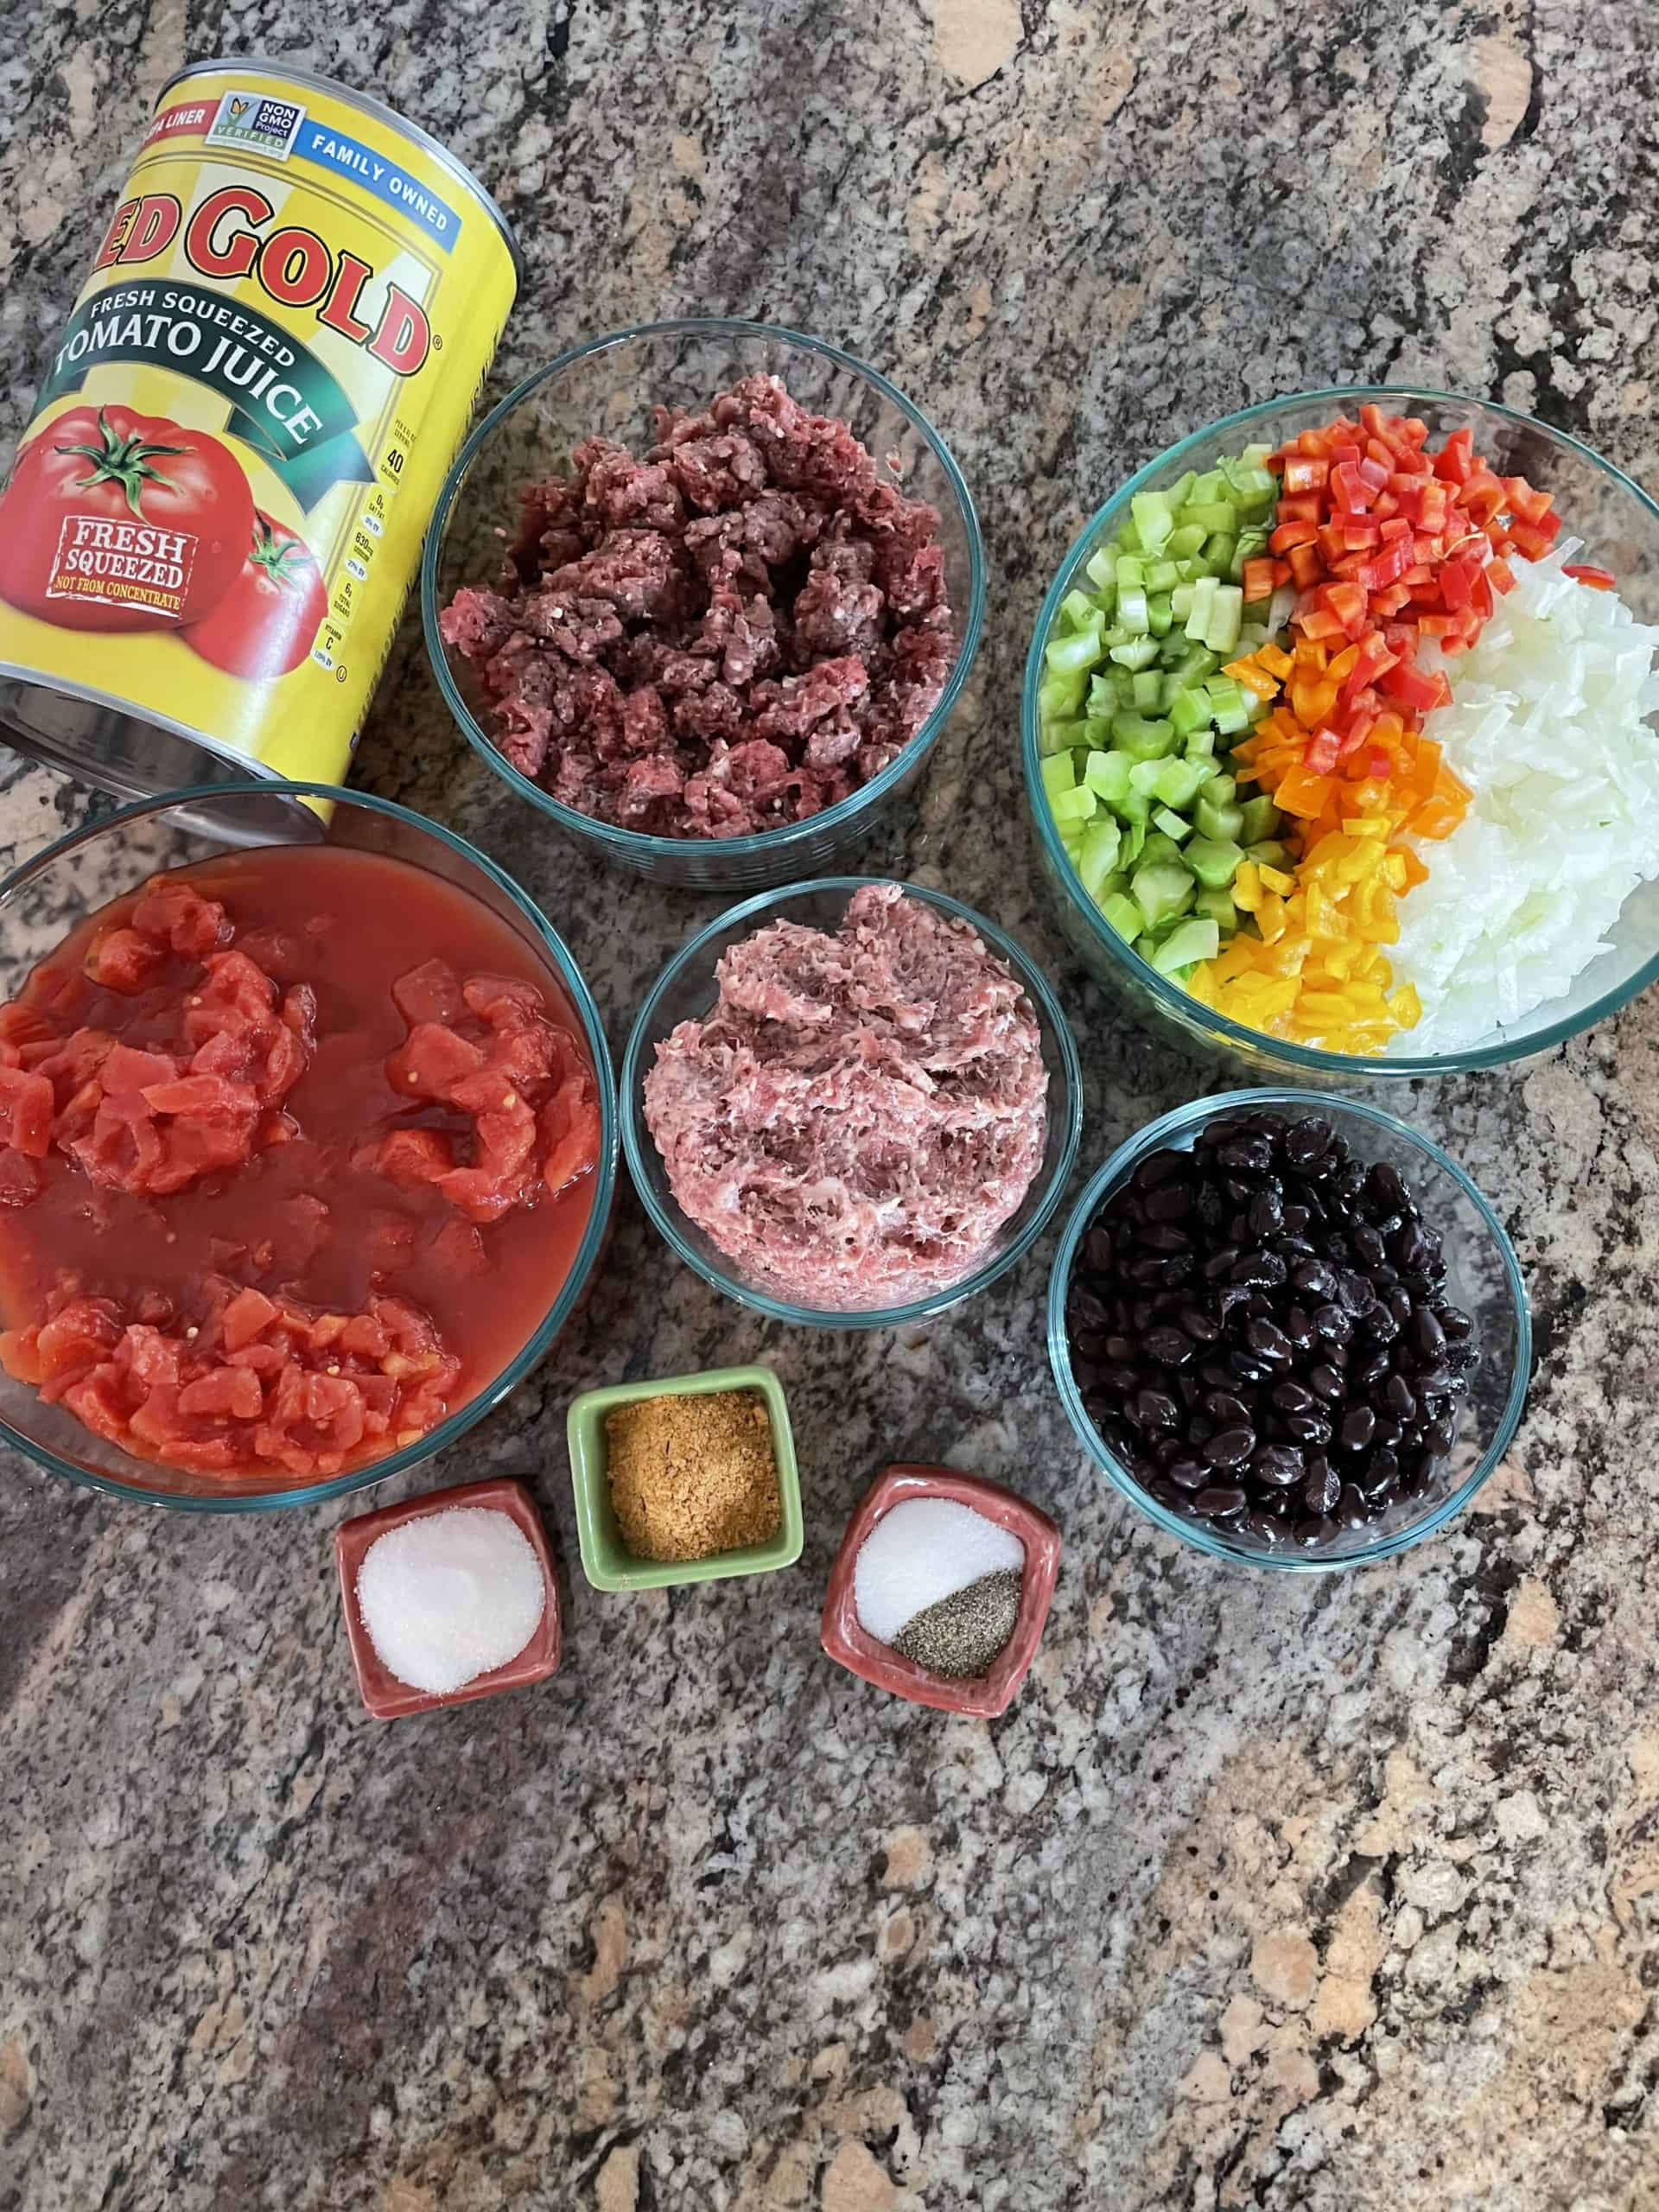 Venison Chili Ingredients - Ground venison, ground pork sausage, diced onion, peppers, & celery, diced tomatoes, taco seasonings, salt, pepper, sugar, tomato juice and black beans.